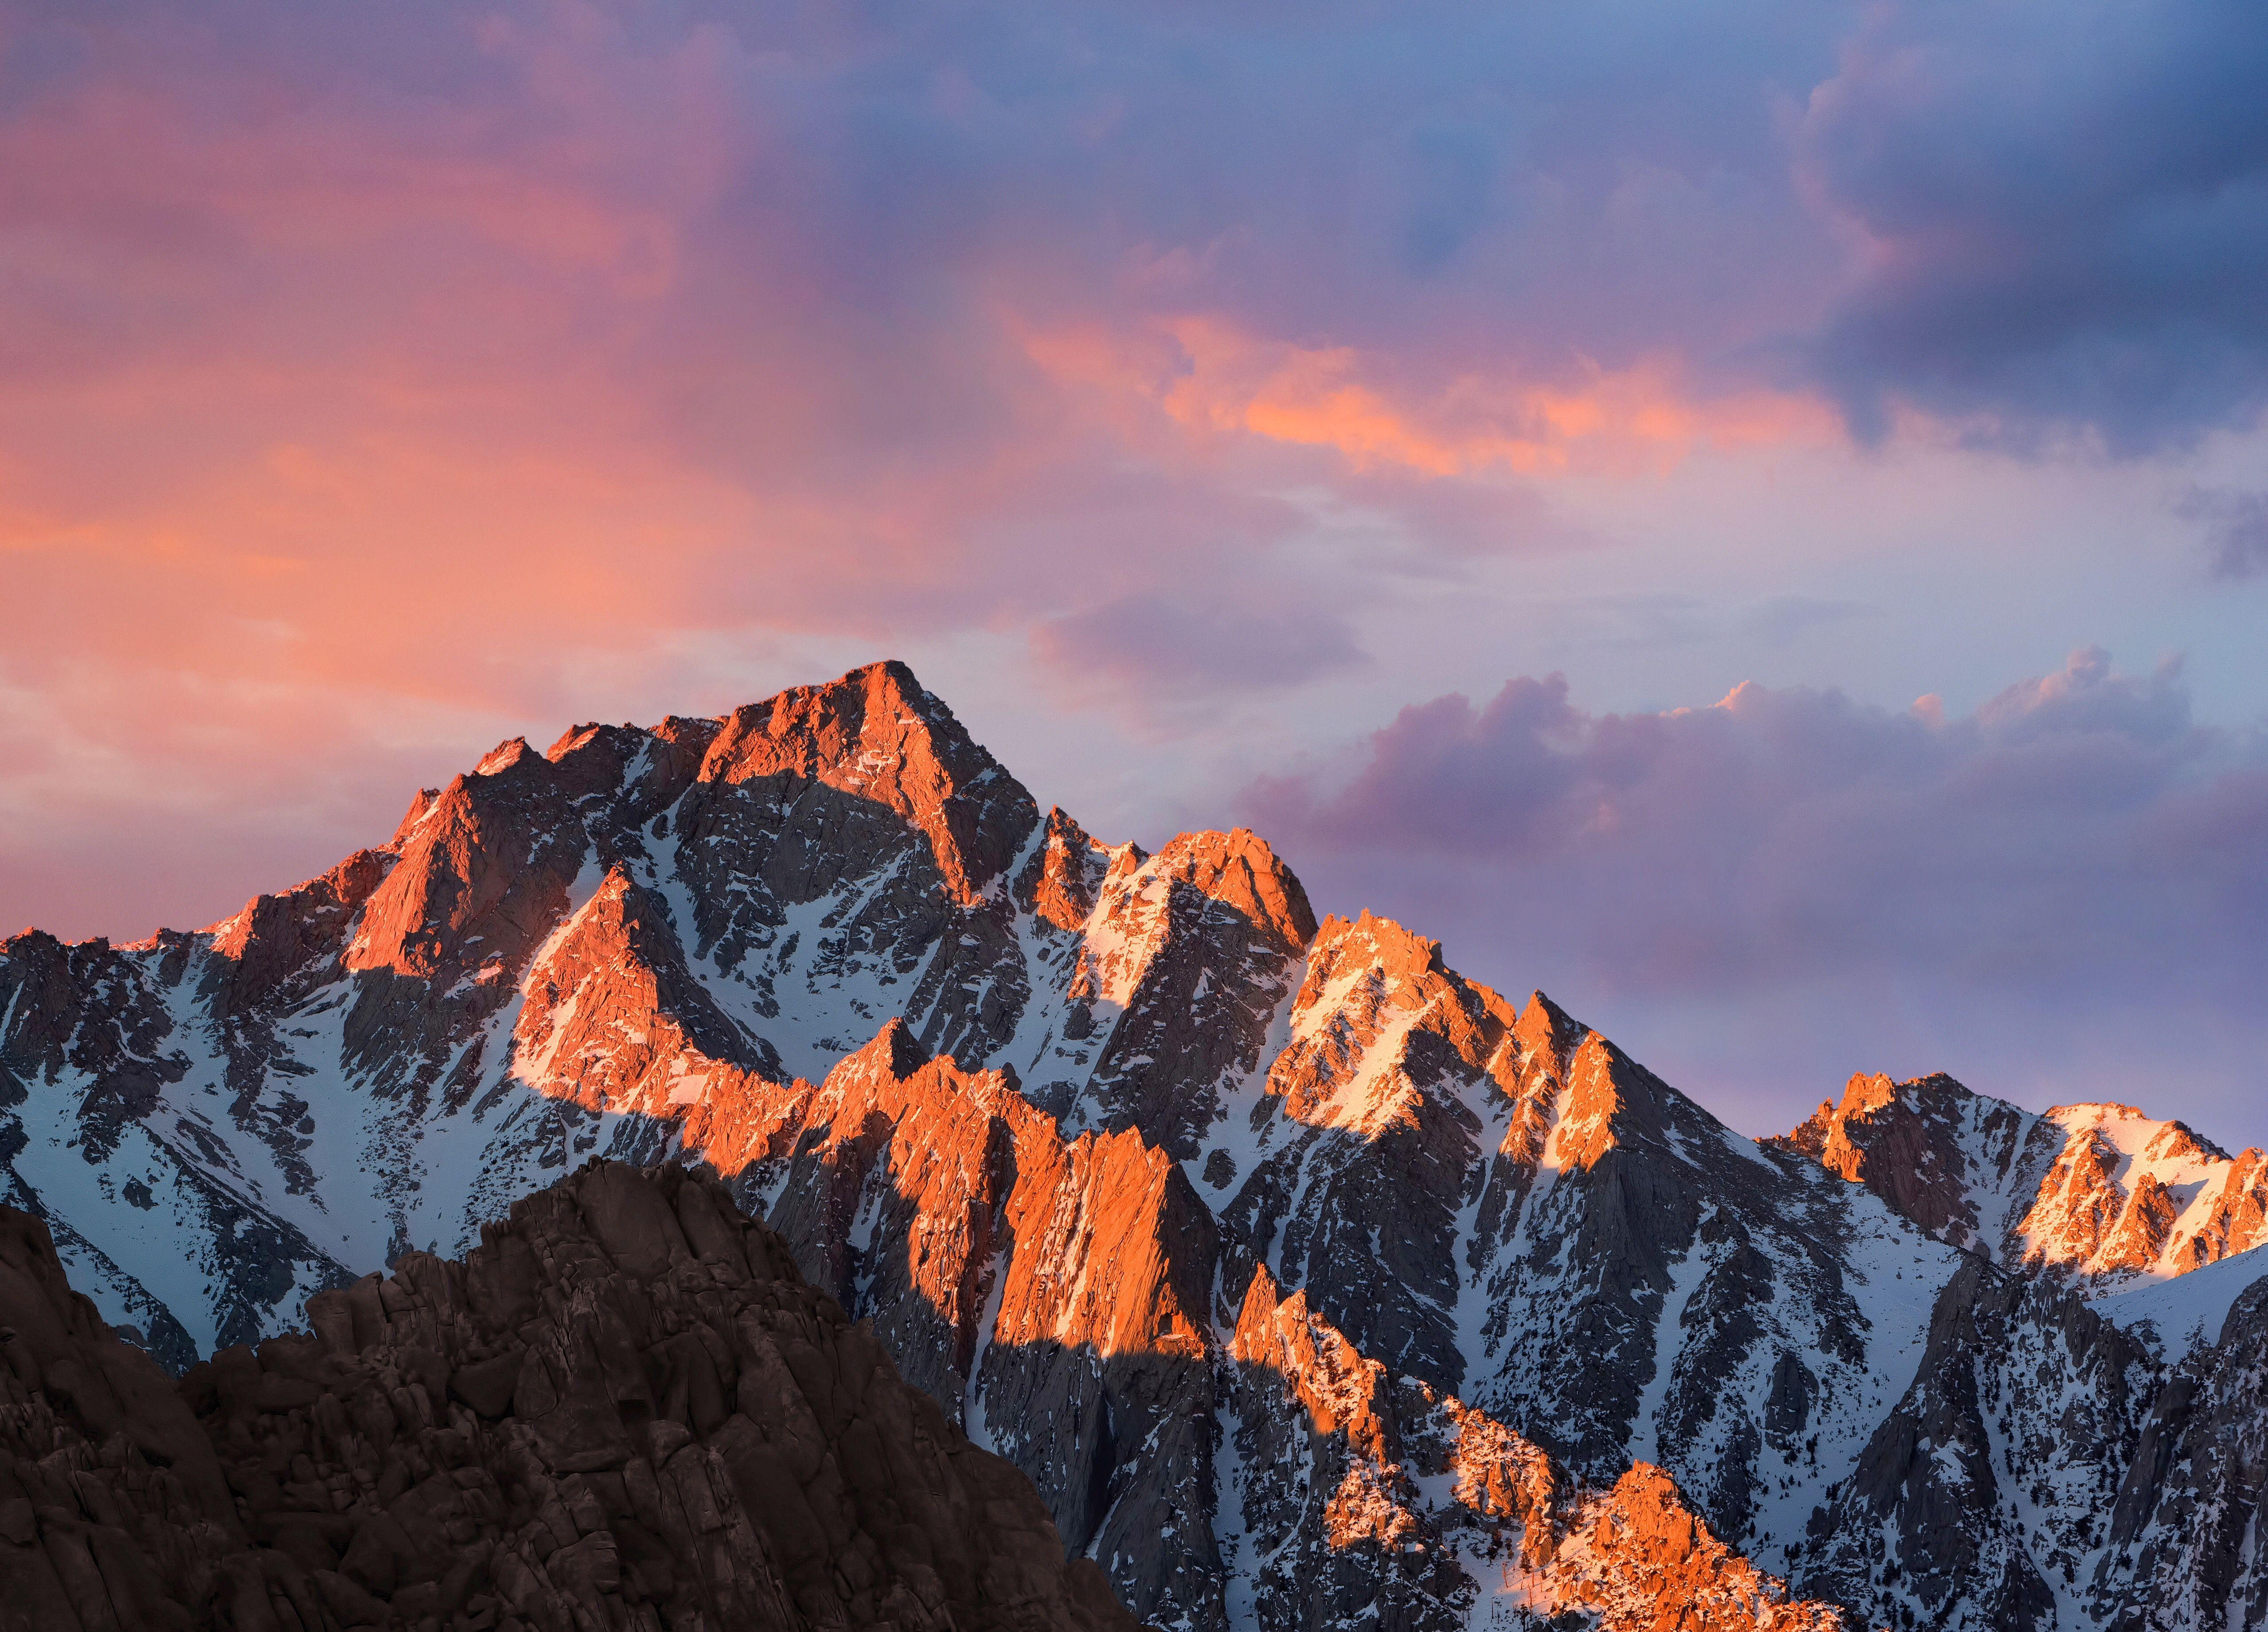 iOS 10 and macOS Sierra Default Wallpapers Image Free Download